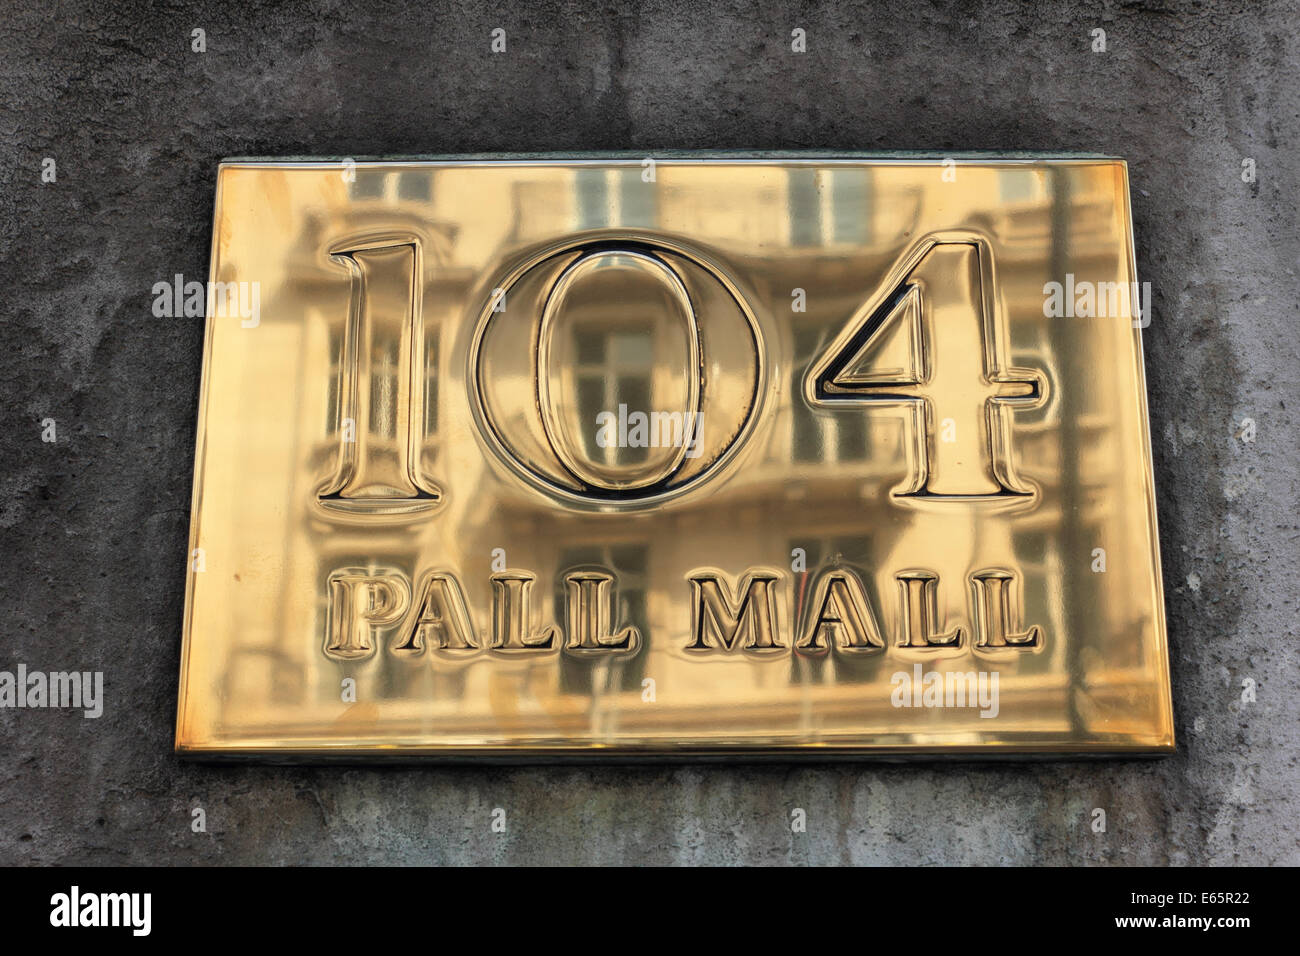 Polished brass door plaque at 104 Pall Mall London England UK - Stock & Brass Plaque Door Stock Photos u0026 Brass Plaque Door Stock Images - Alamy